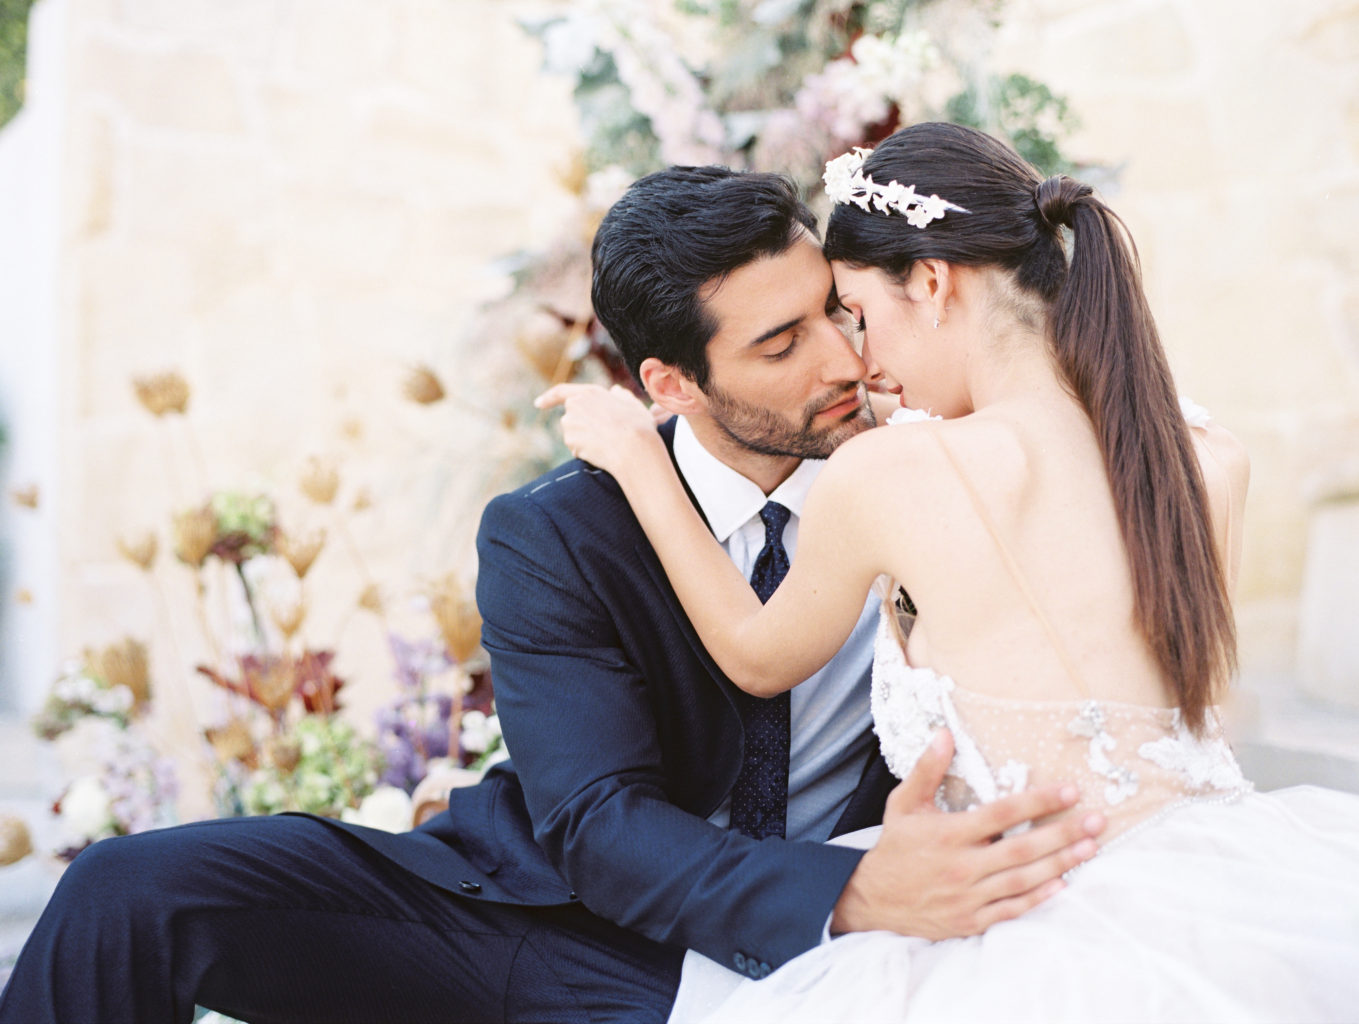 The best wedding photographers